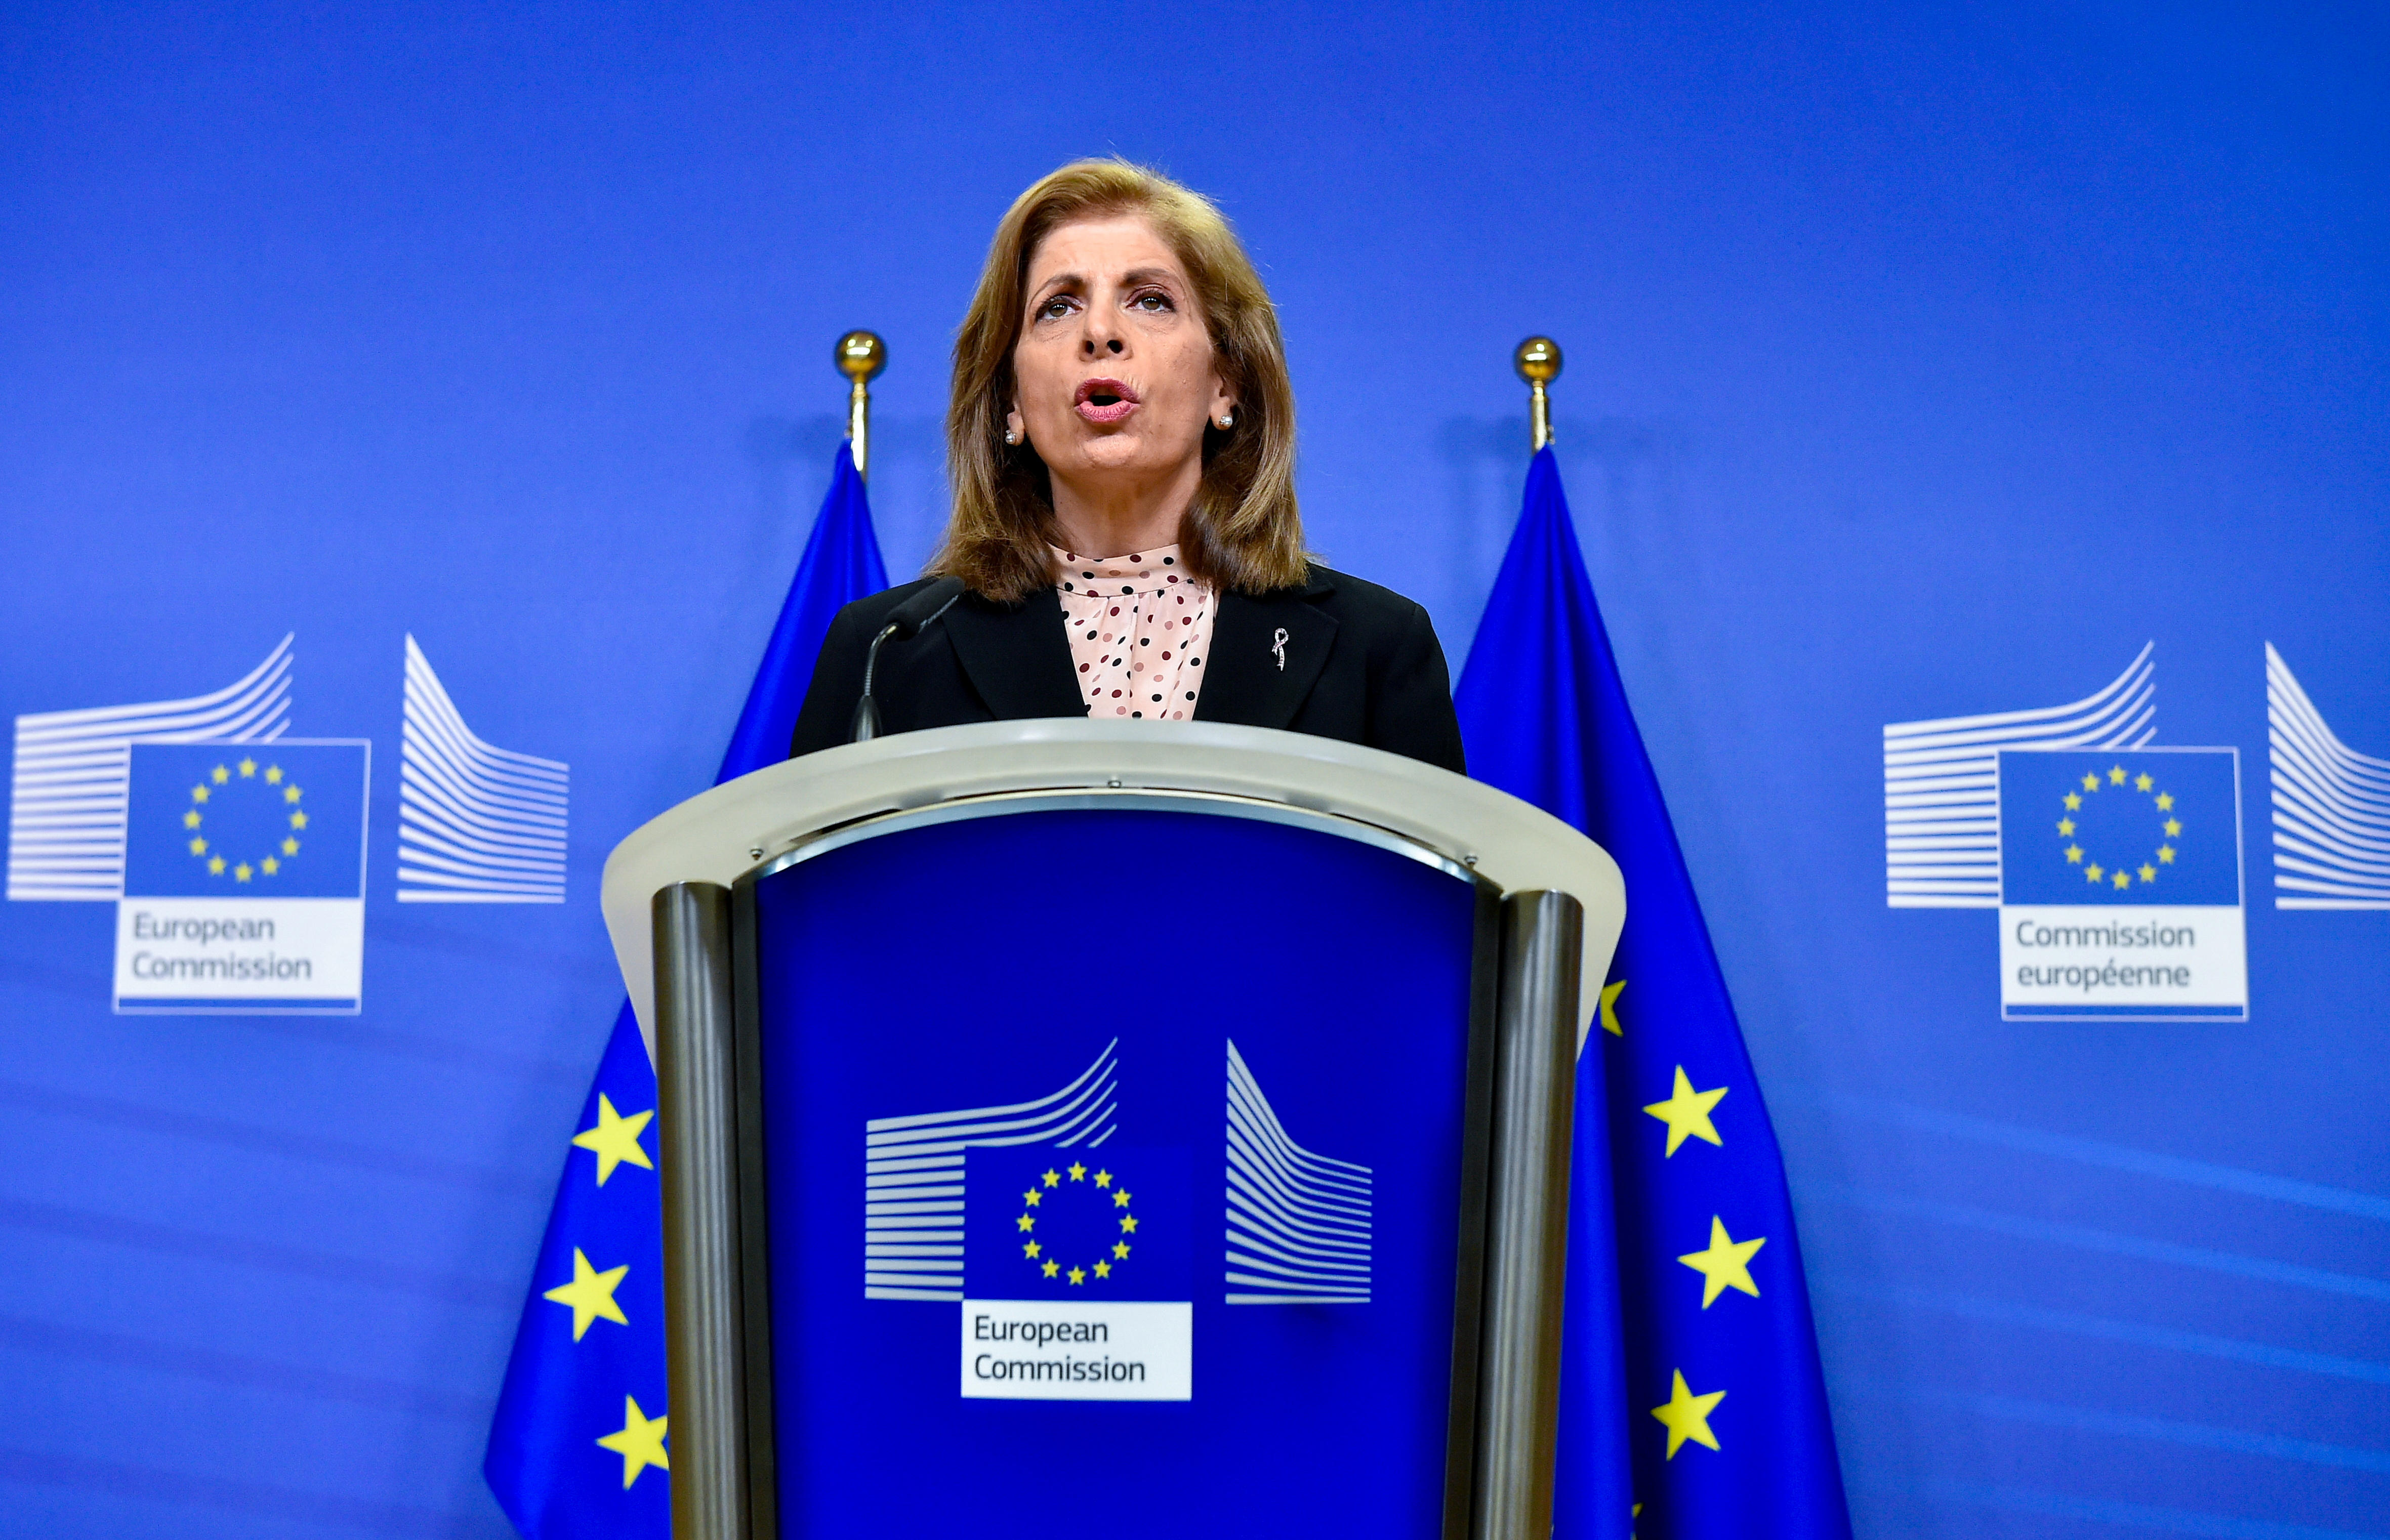 European Union commissioner for Health, Stella Kyriakides, gives a news statement on vaccine deliveries at the EU headquarters, in Brussels, Belgium January 25, 2021. John Thys/Pool via REUTERS